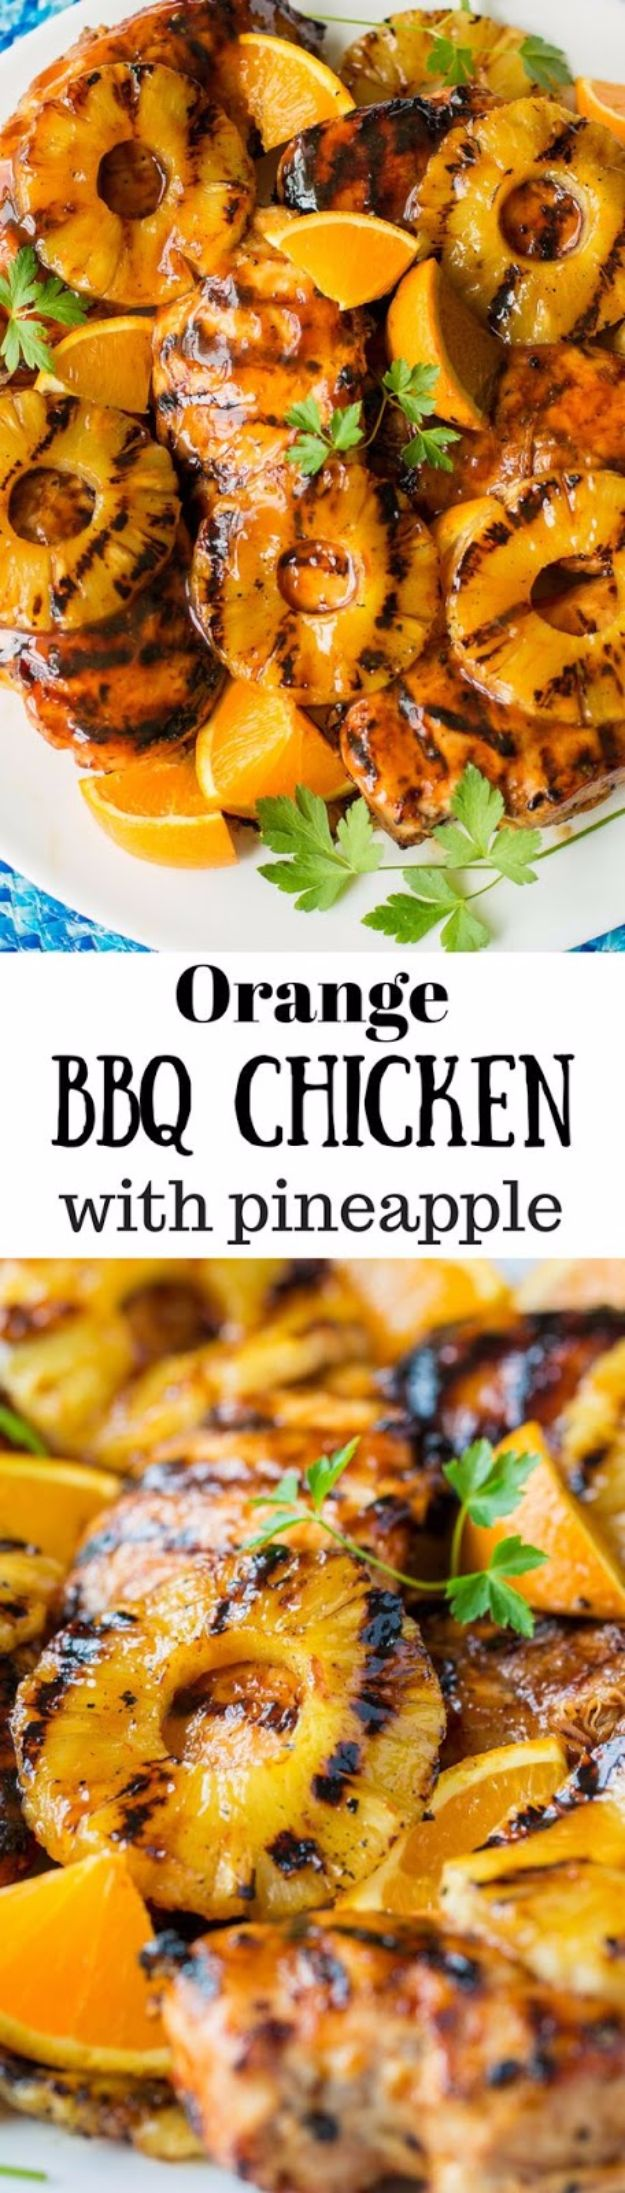 Best Barbecue Recipes - Orange Barbecue Grilled Chicken - Easy BBQ Recipe Ideas for Lunch, Dinner and Quick Party Appetizers - Grilled and Smoked Foods, Chicken, Beef and Meat, Fish and Vegetable Ideas for Grilling - Sauces and Rubs, Seasonings and Favorite Bar BBQ Tips #bbq #bbqrecipes #grilling